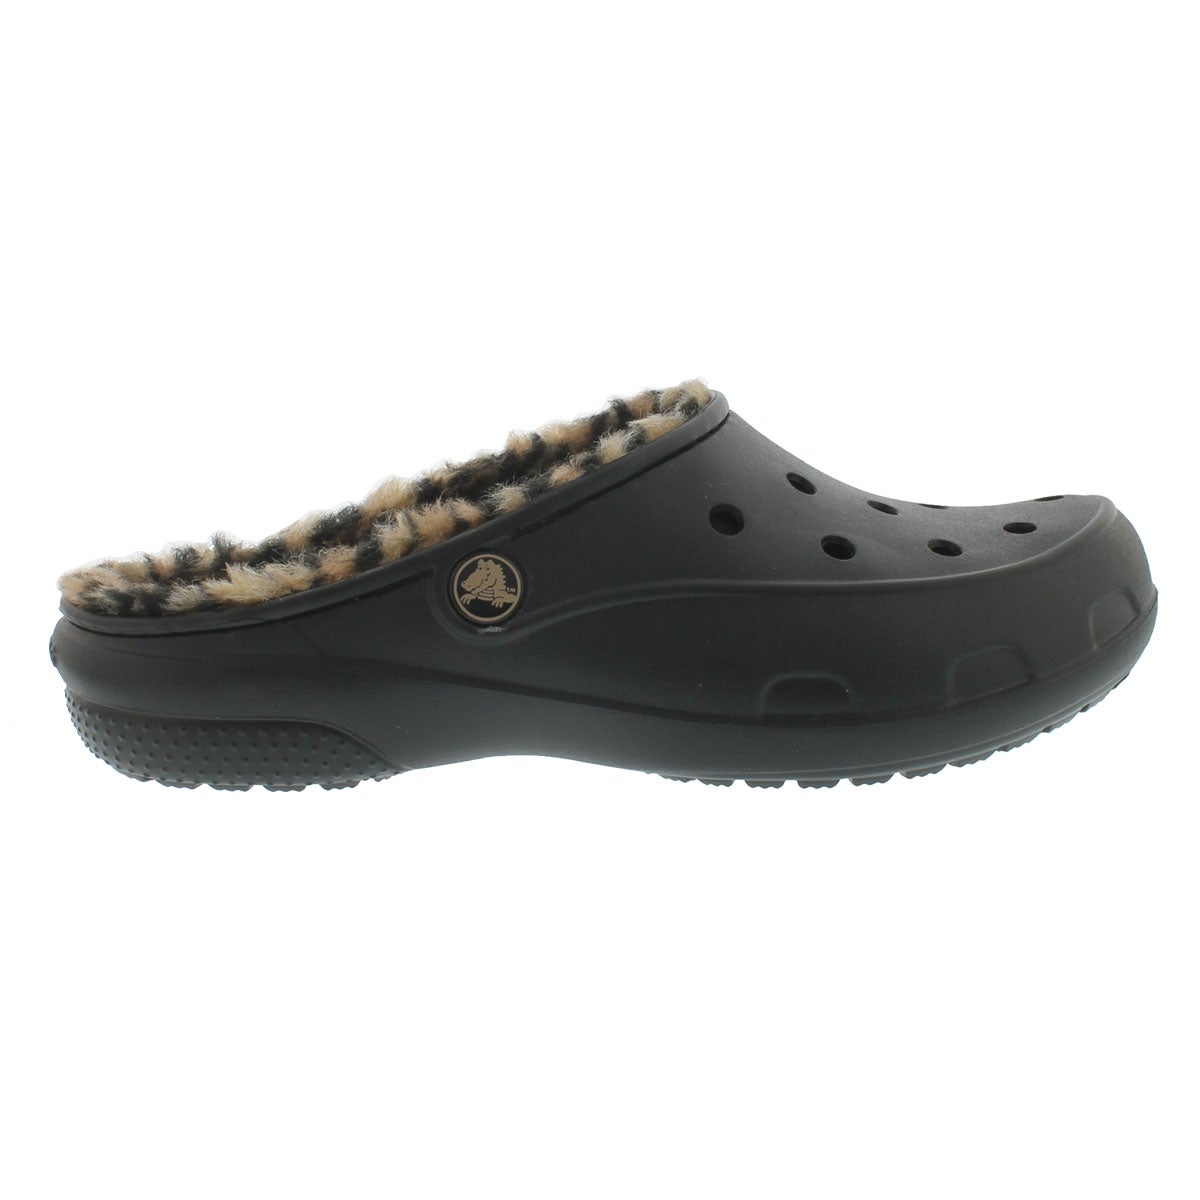 Lds Freesail Leopard Lined blk/gld clog